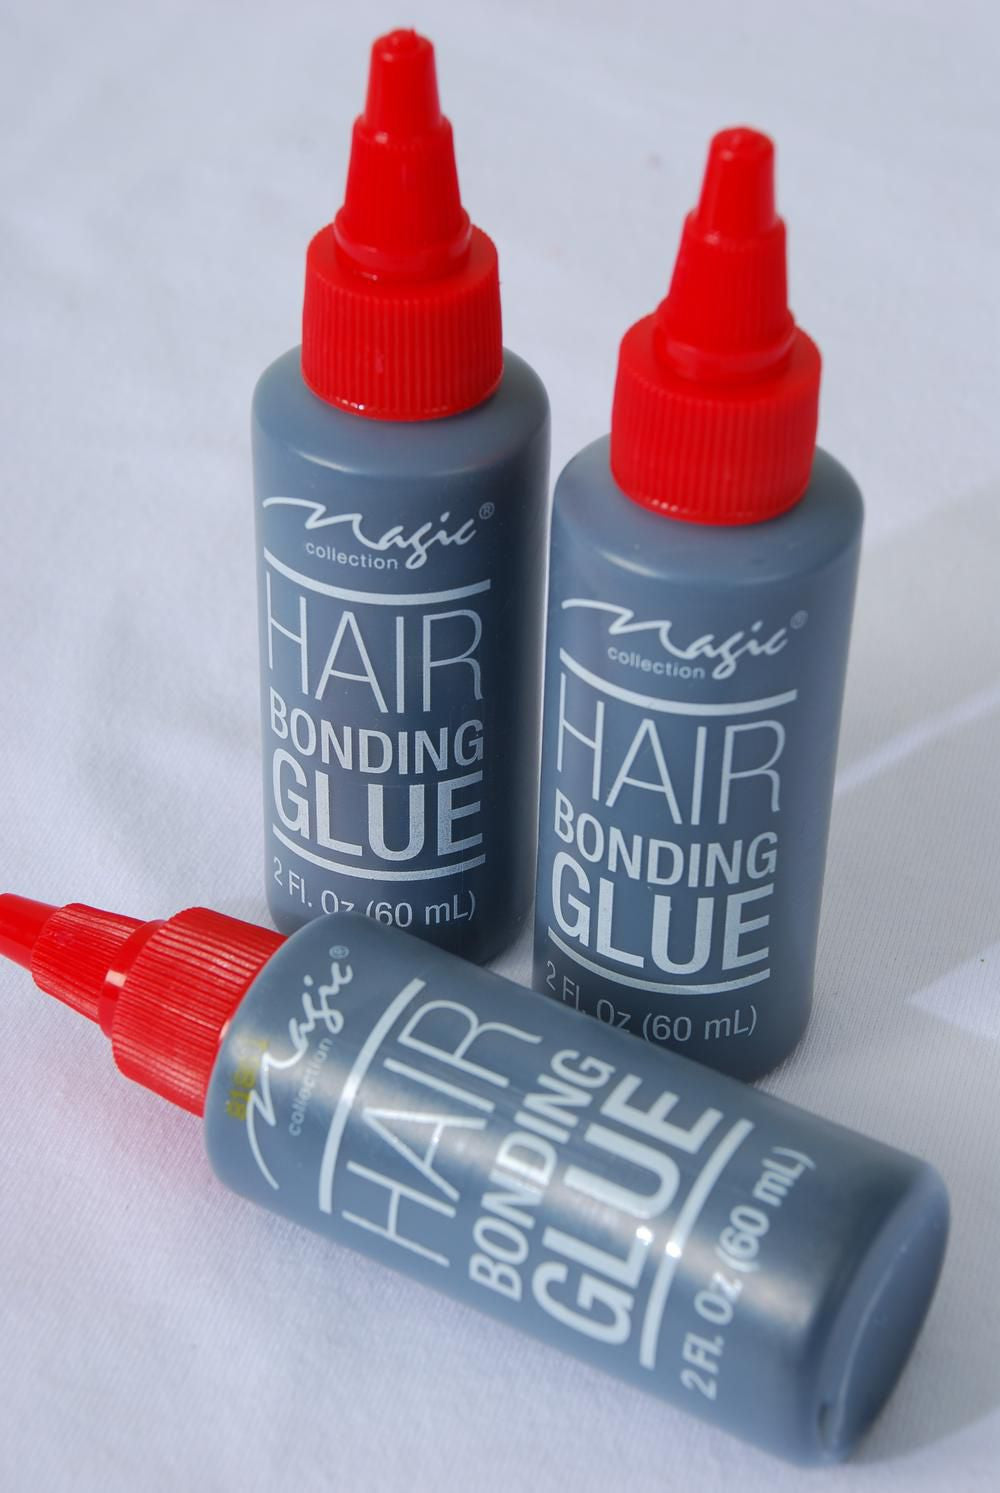 Hair Bonding Glue 2fl OZ